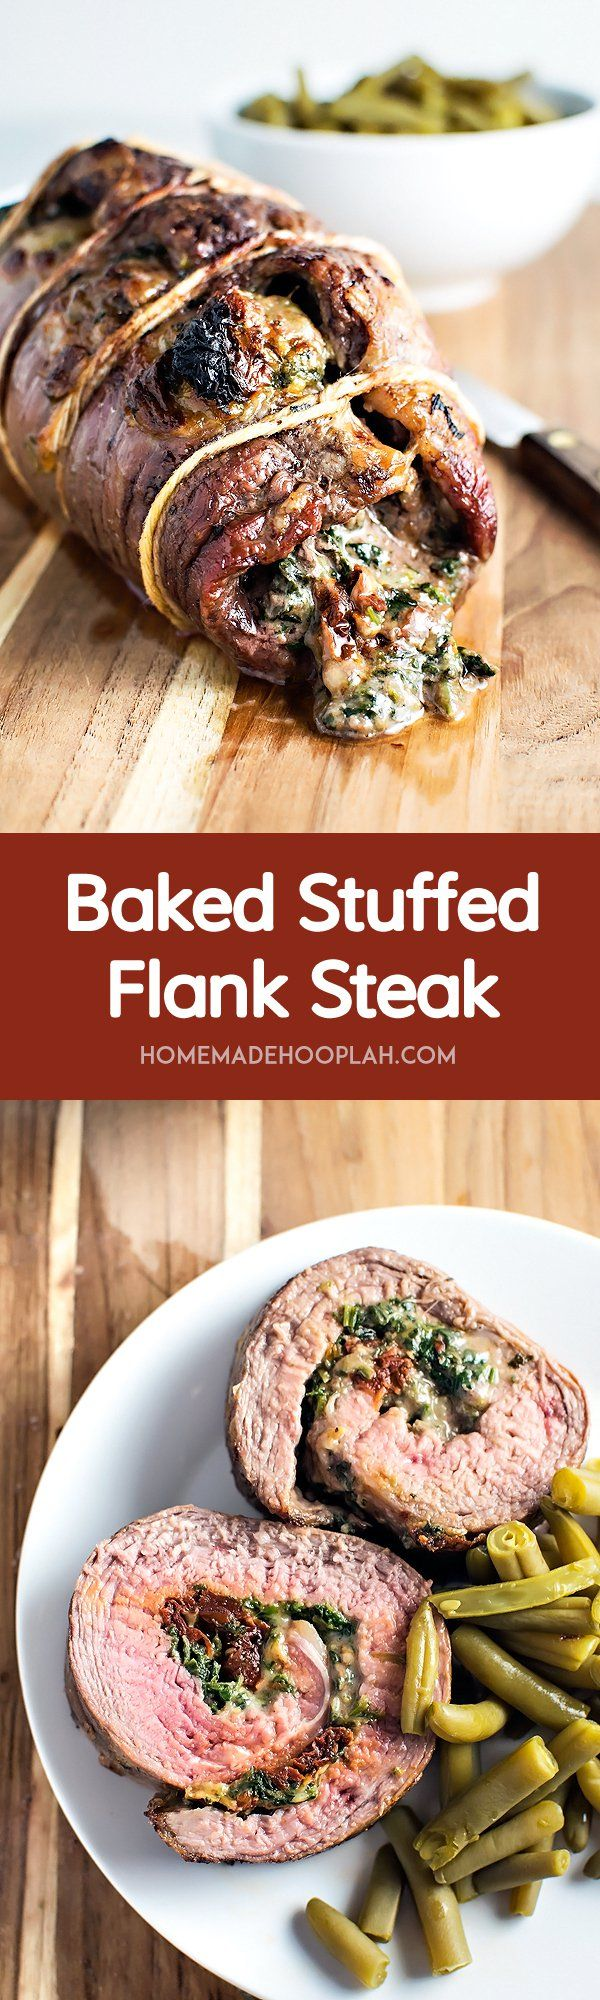 Baked Stuffed Flank Steak! Spice up your boring steak dinner by baking ...